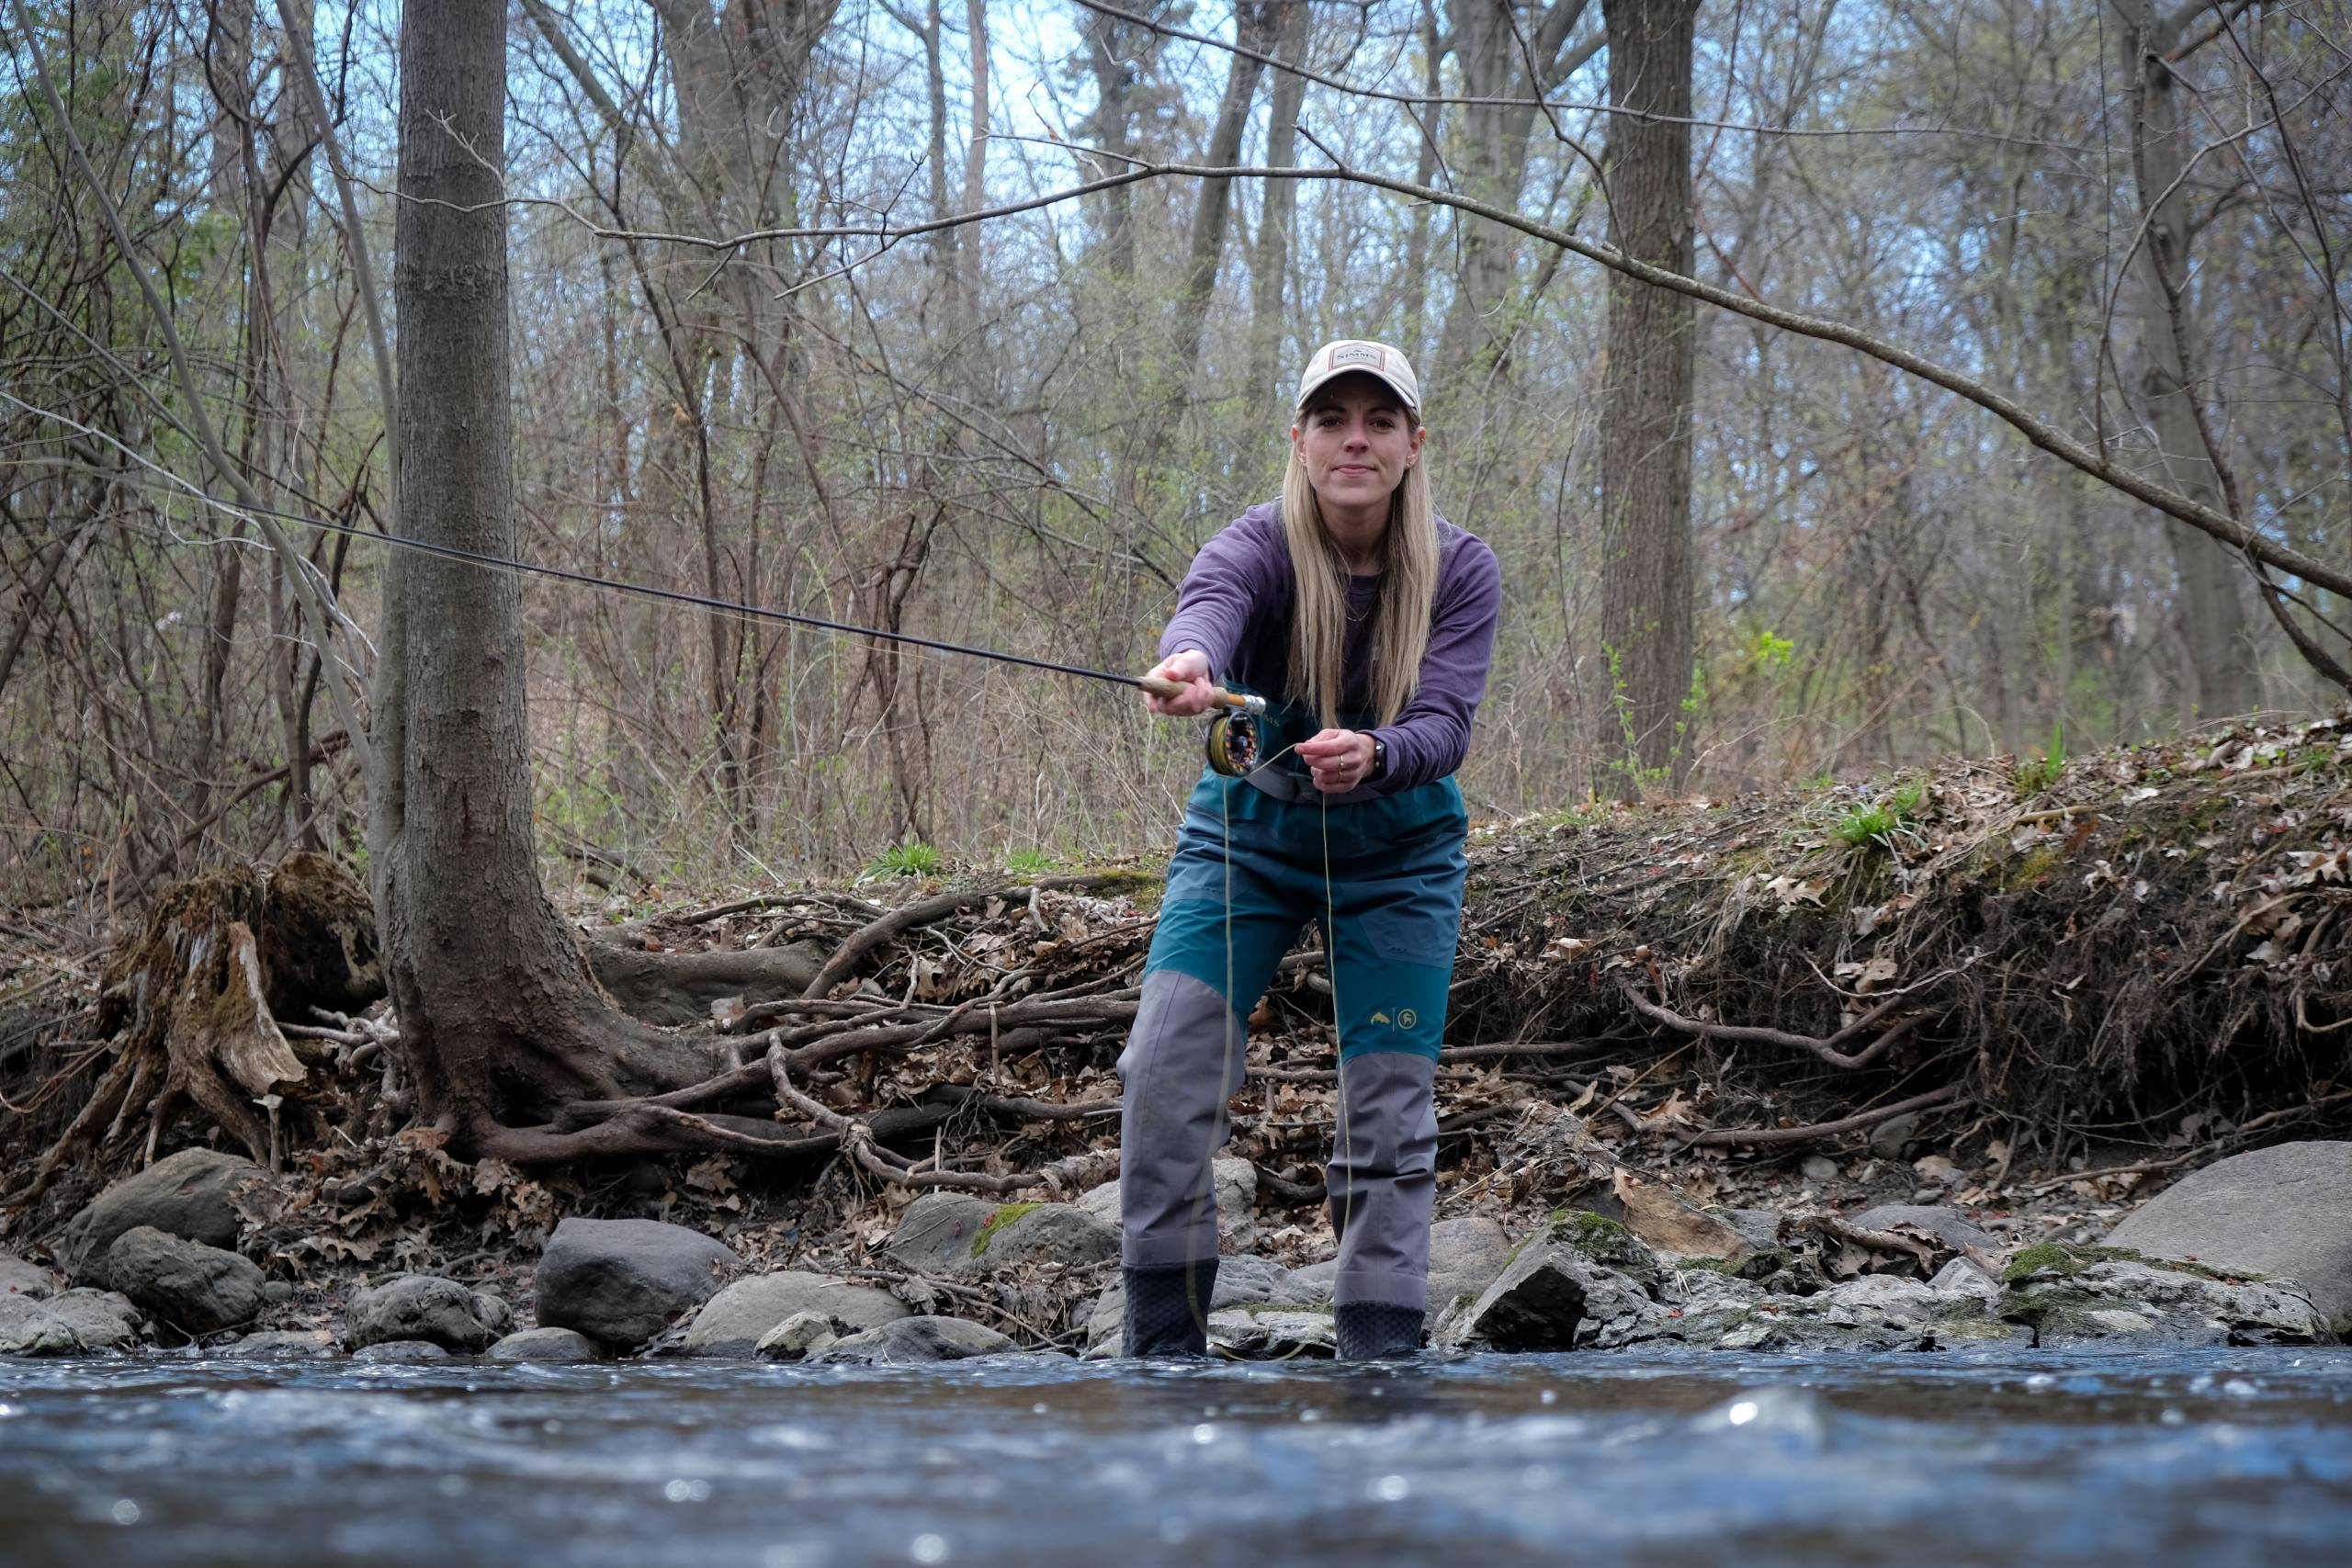 Person throwing a fly fishing rod in the Simms backcountry flyweight fly fishing waders lifestyle